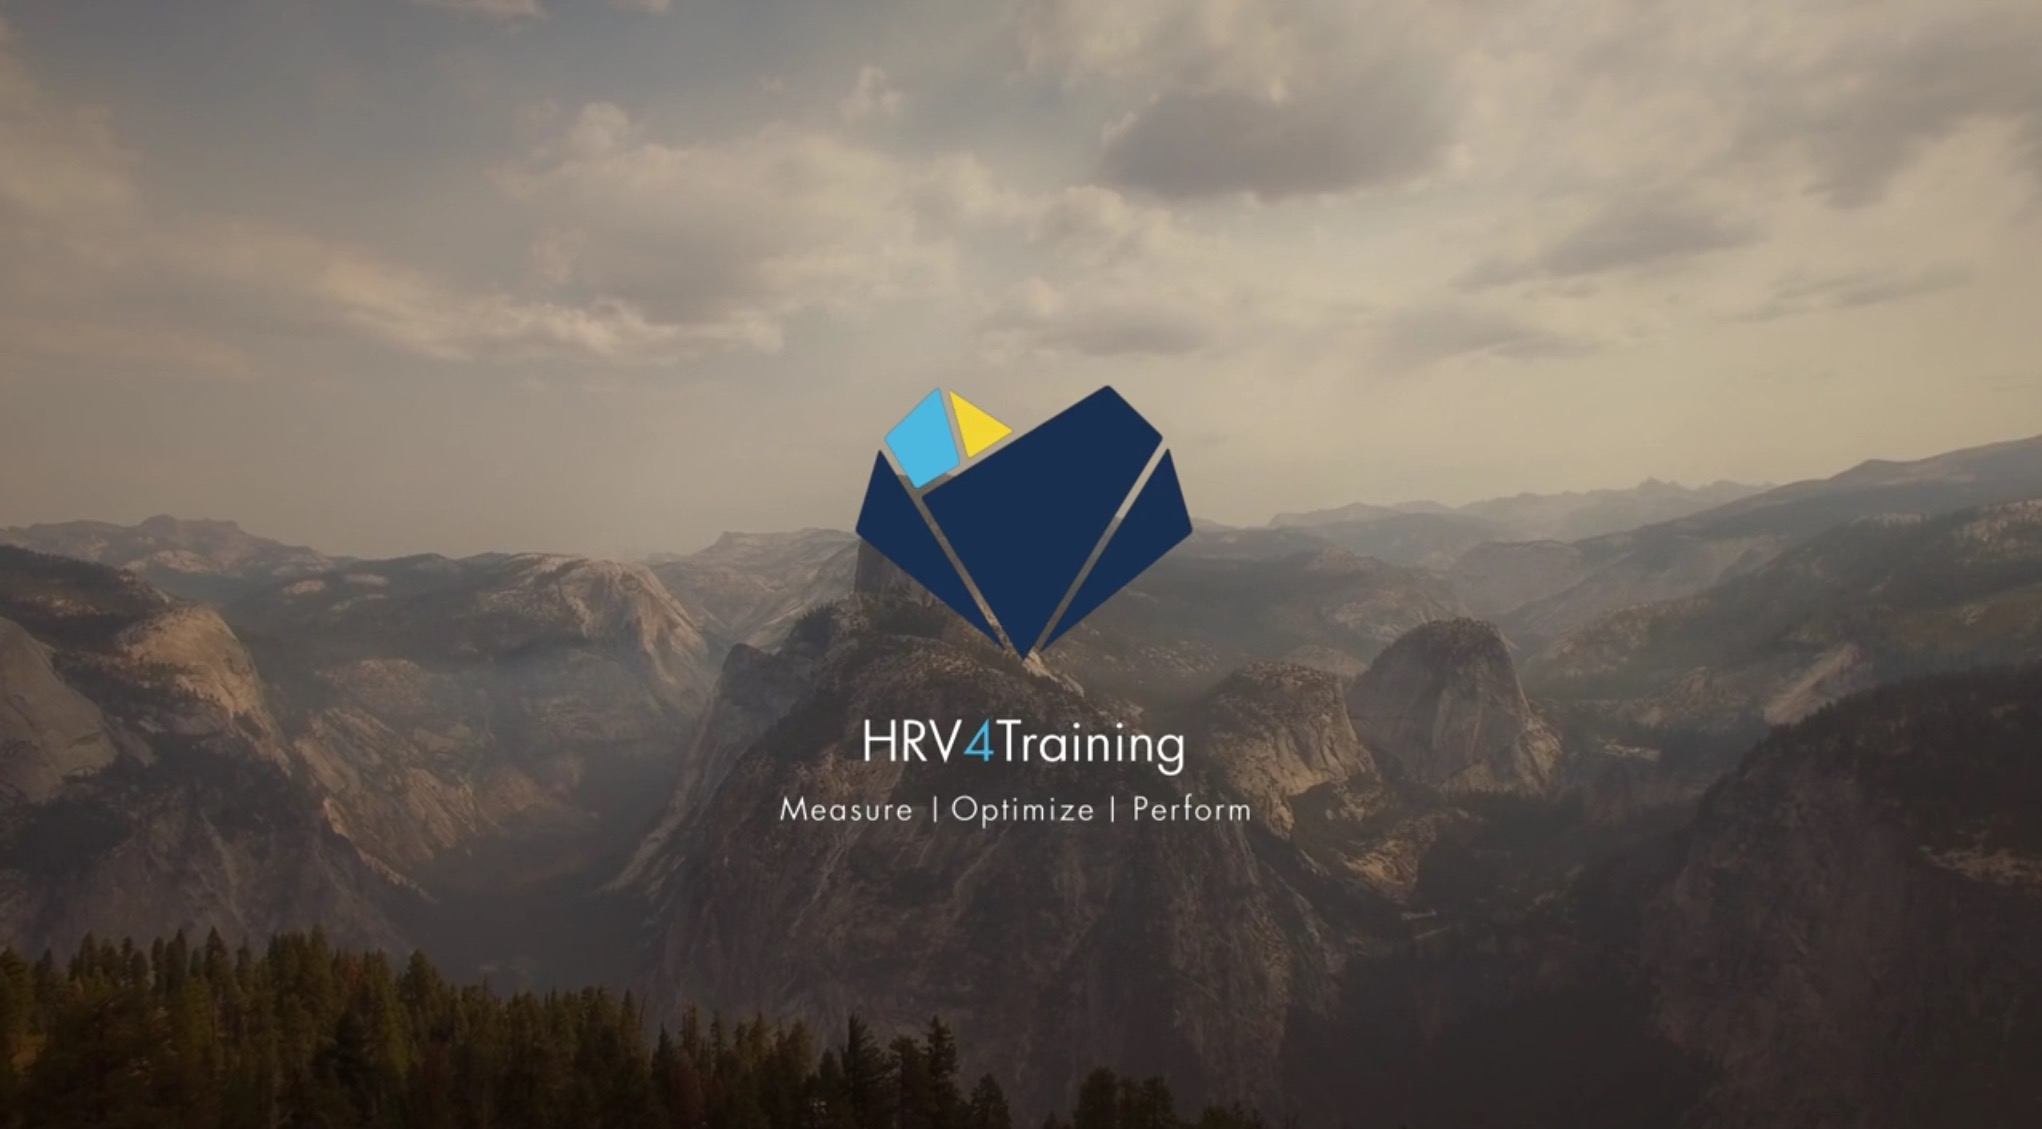 HRV4Training (Heart Rate Variability)